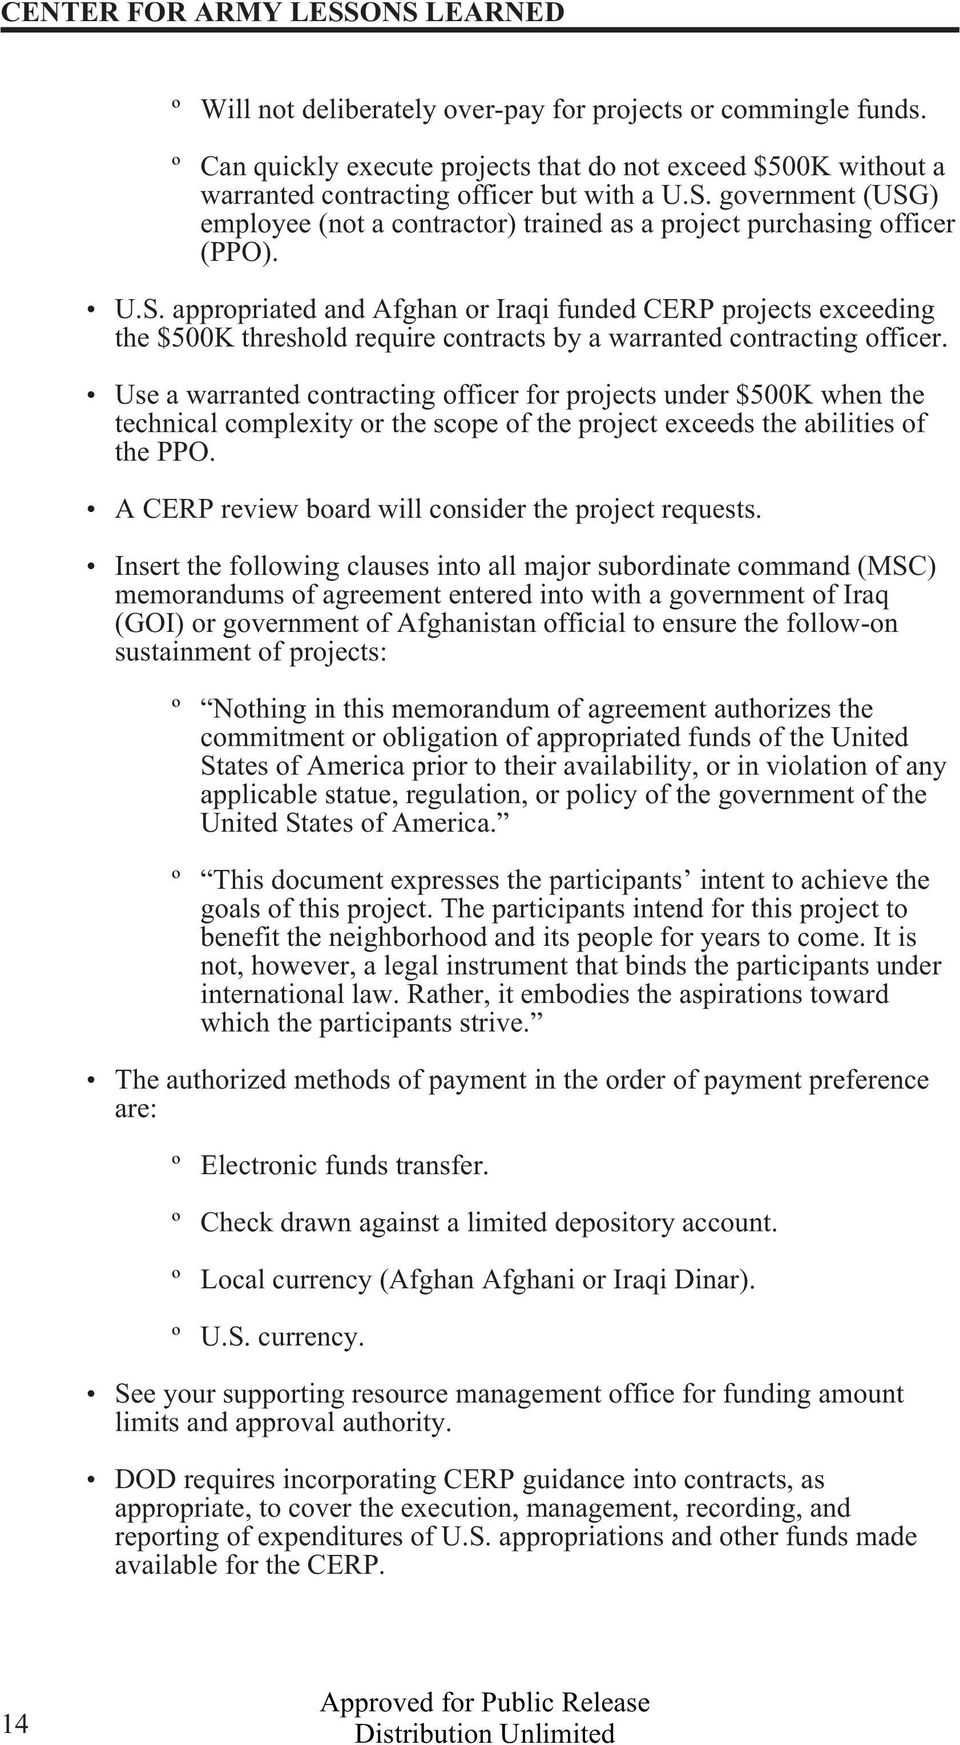 government (USG) employee (not a contractor) trained as a project purchasing officer (PPO). U.S. appropriated and Afghan or Iraqi funded CERP projects exceeding the $500K threshold require contracts by a warranted contracting officer.